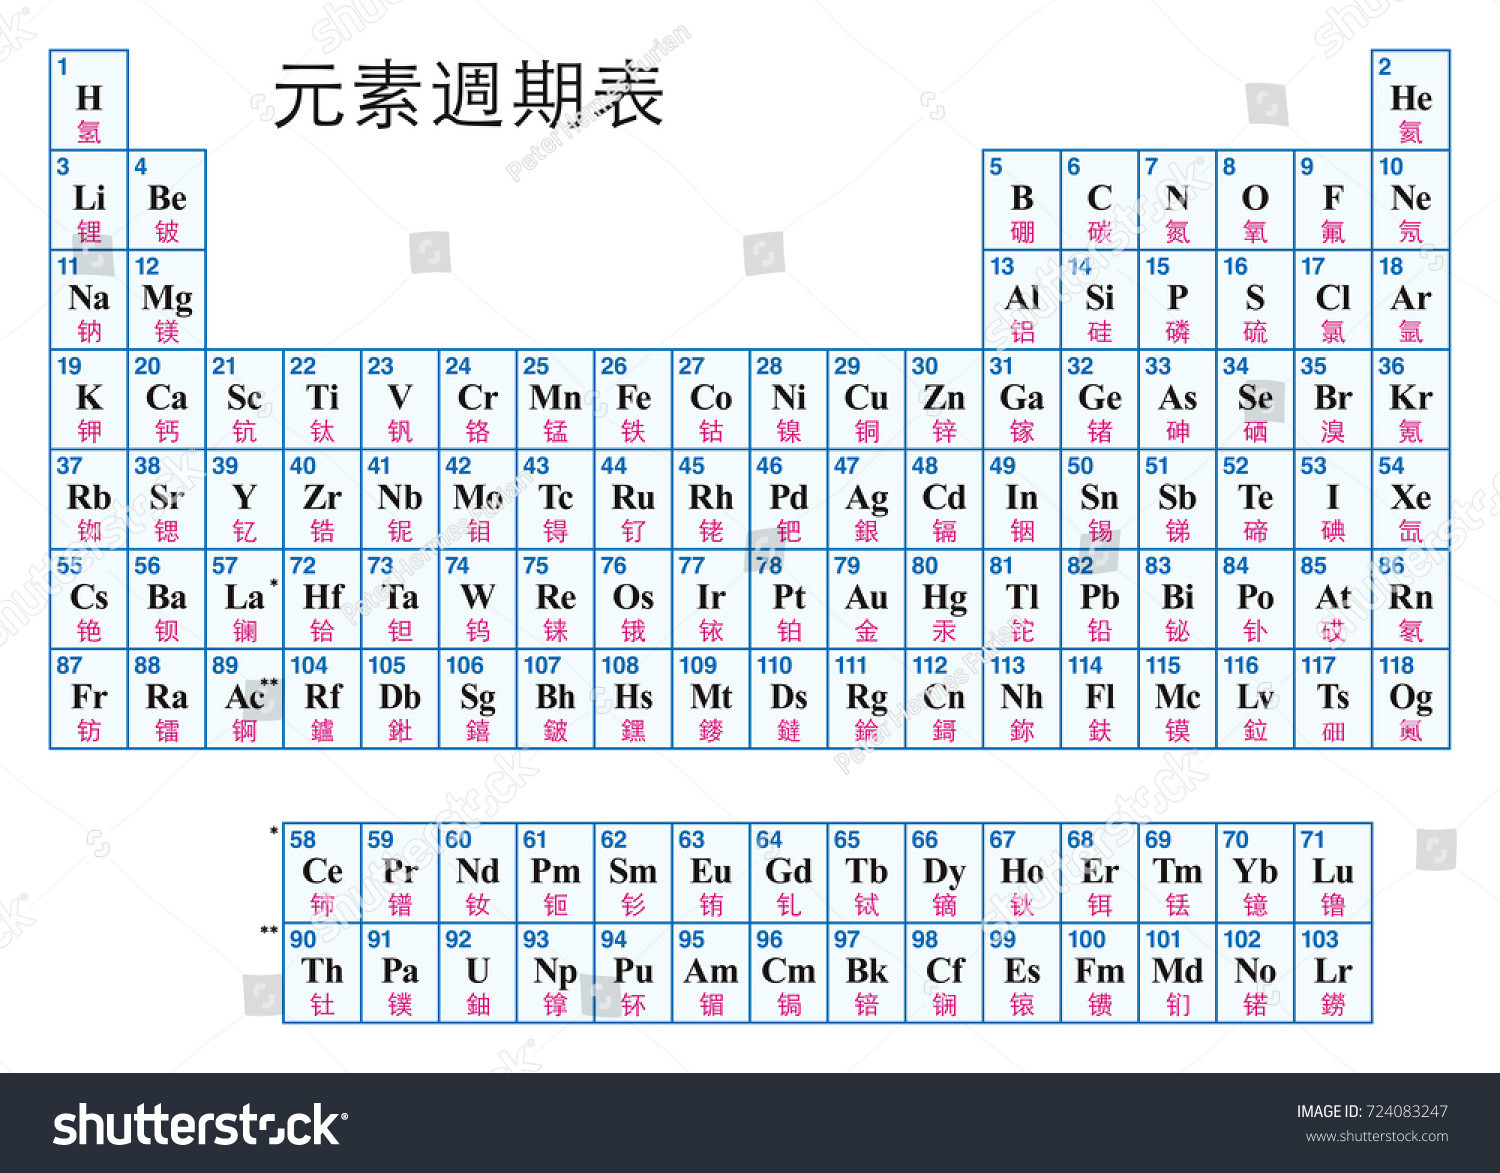 Periodic table elements chinese tabular arrangement stock vector periodic table of the elements chinese tabular arrangement of the chemical elements with their gamestrikefo Gallery